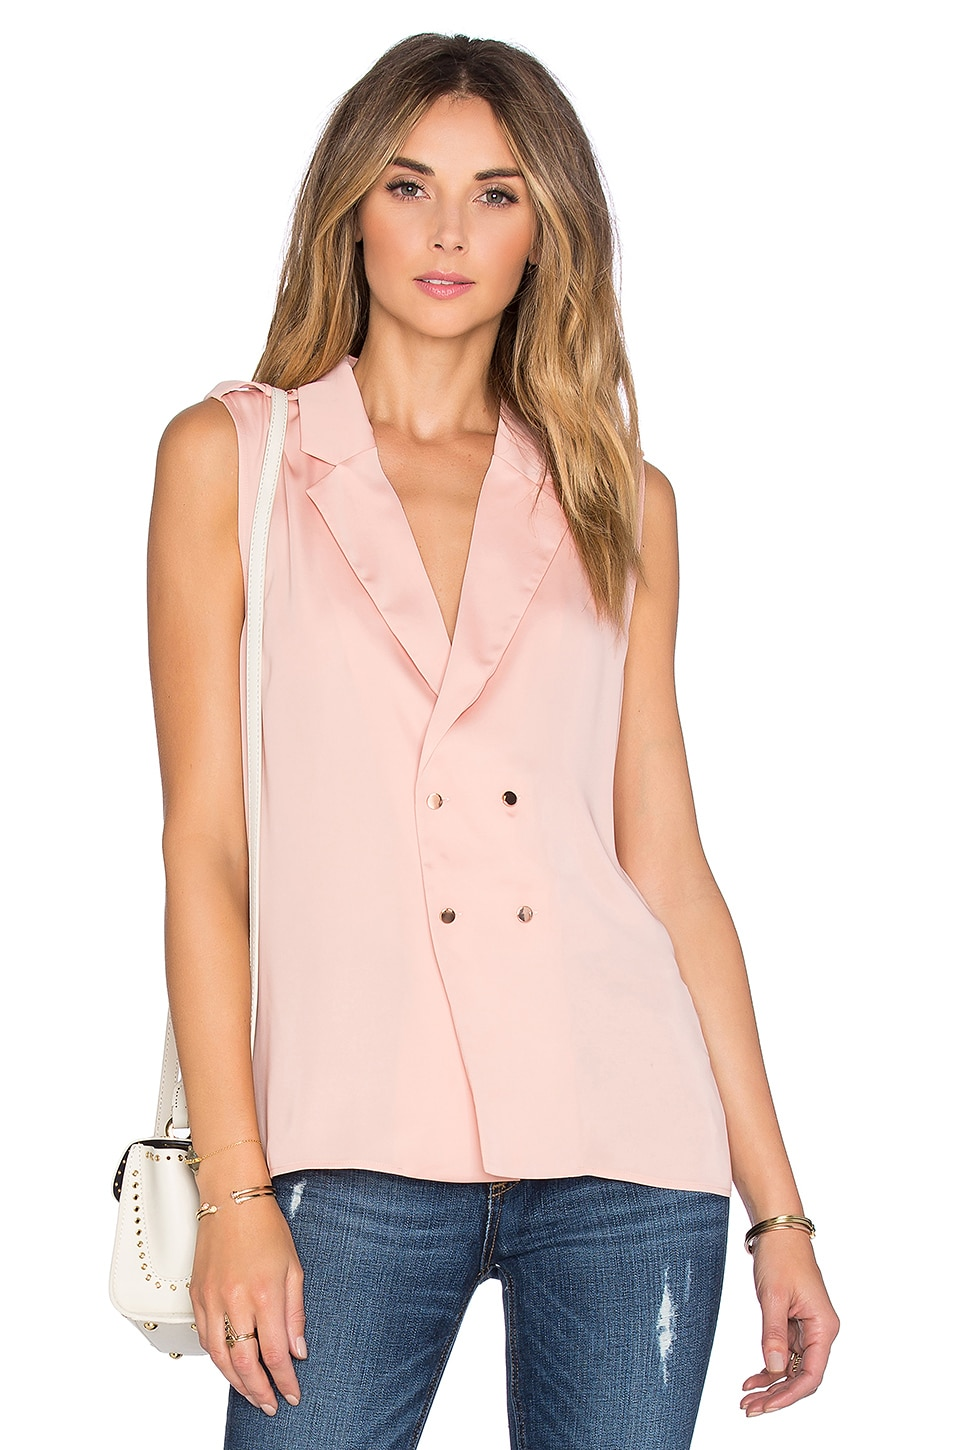 L'Academie The Military Blouse en Blush